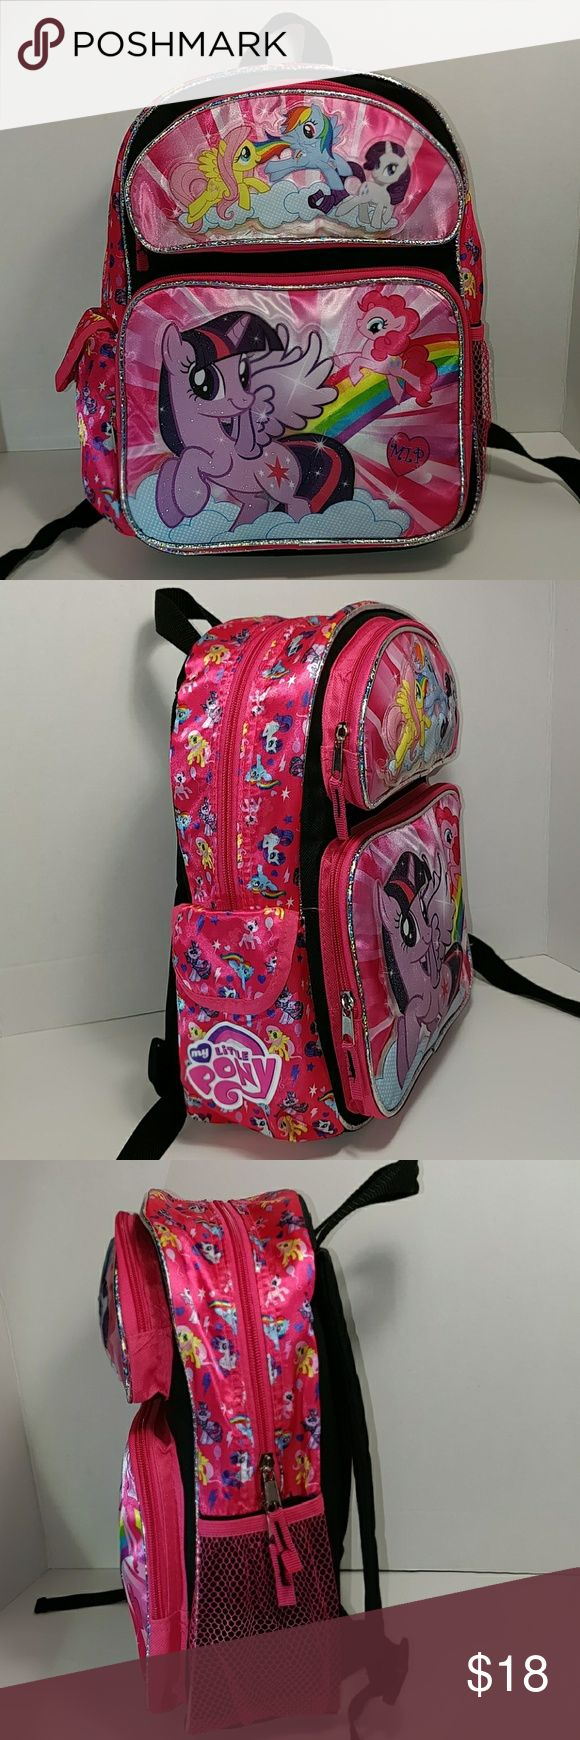 My Little Pony Backpack 5 ponies in the front.  Brand New!!!  The size is perfect for a preschooler. Makes a perfect day pack for travel. My Little Pony Other